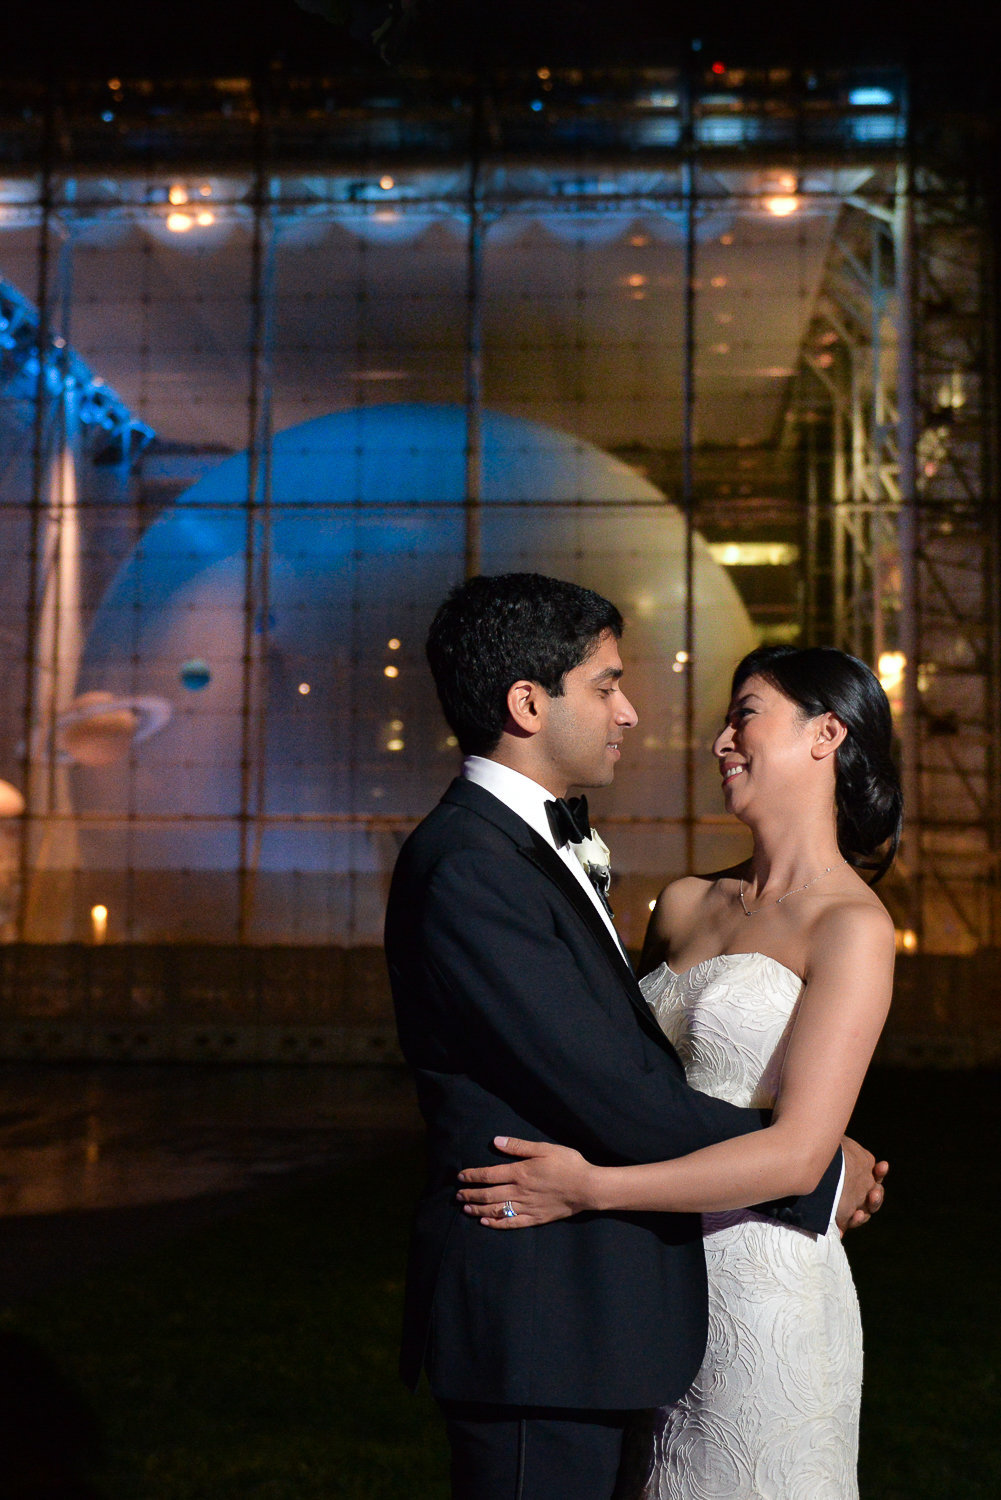 planetarium, nyc wedding photography, artistic, unique, beautiful